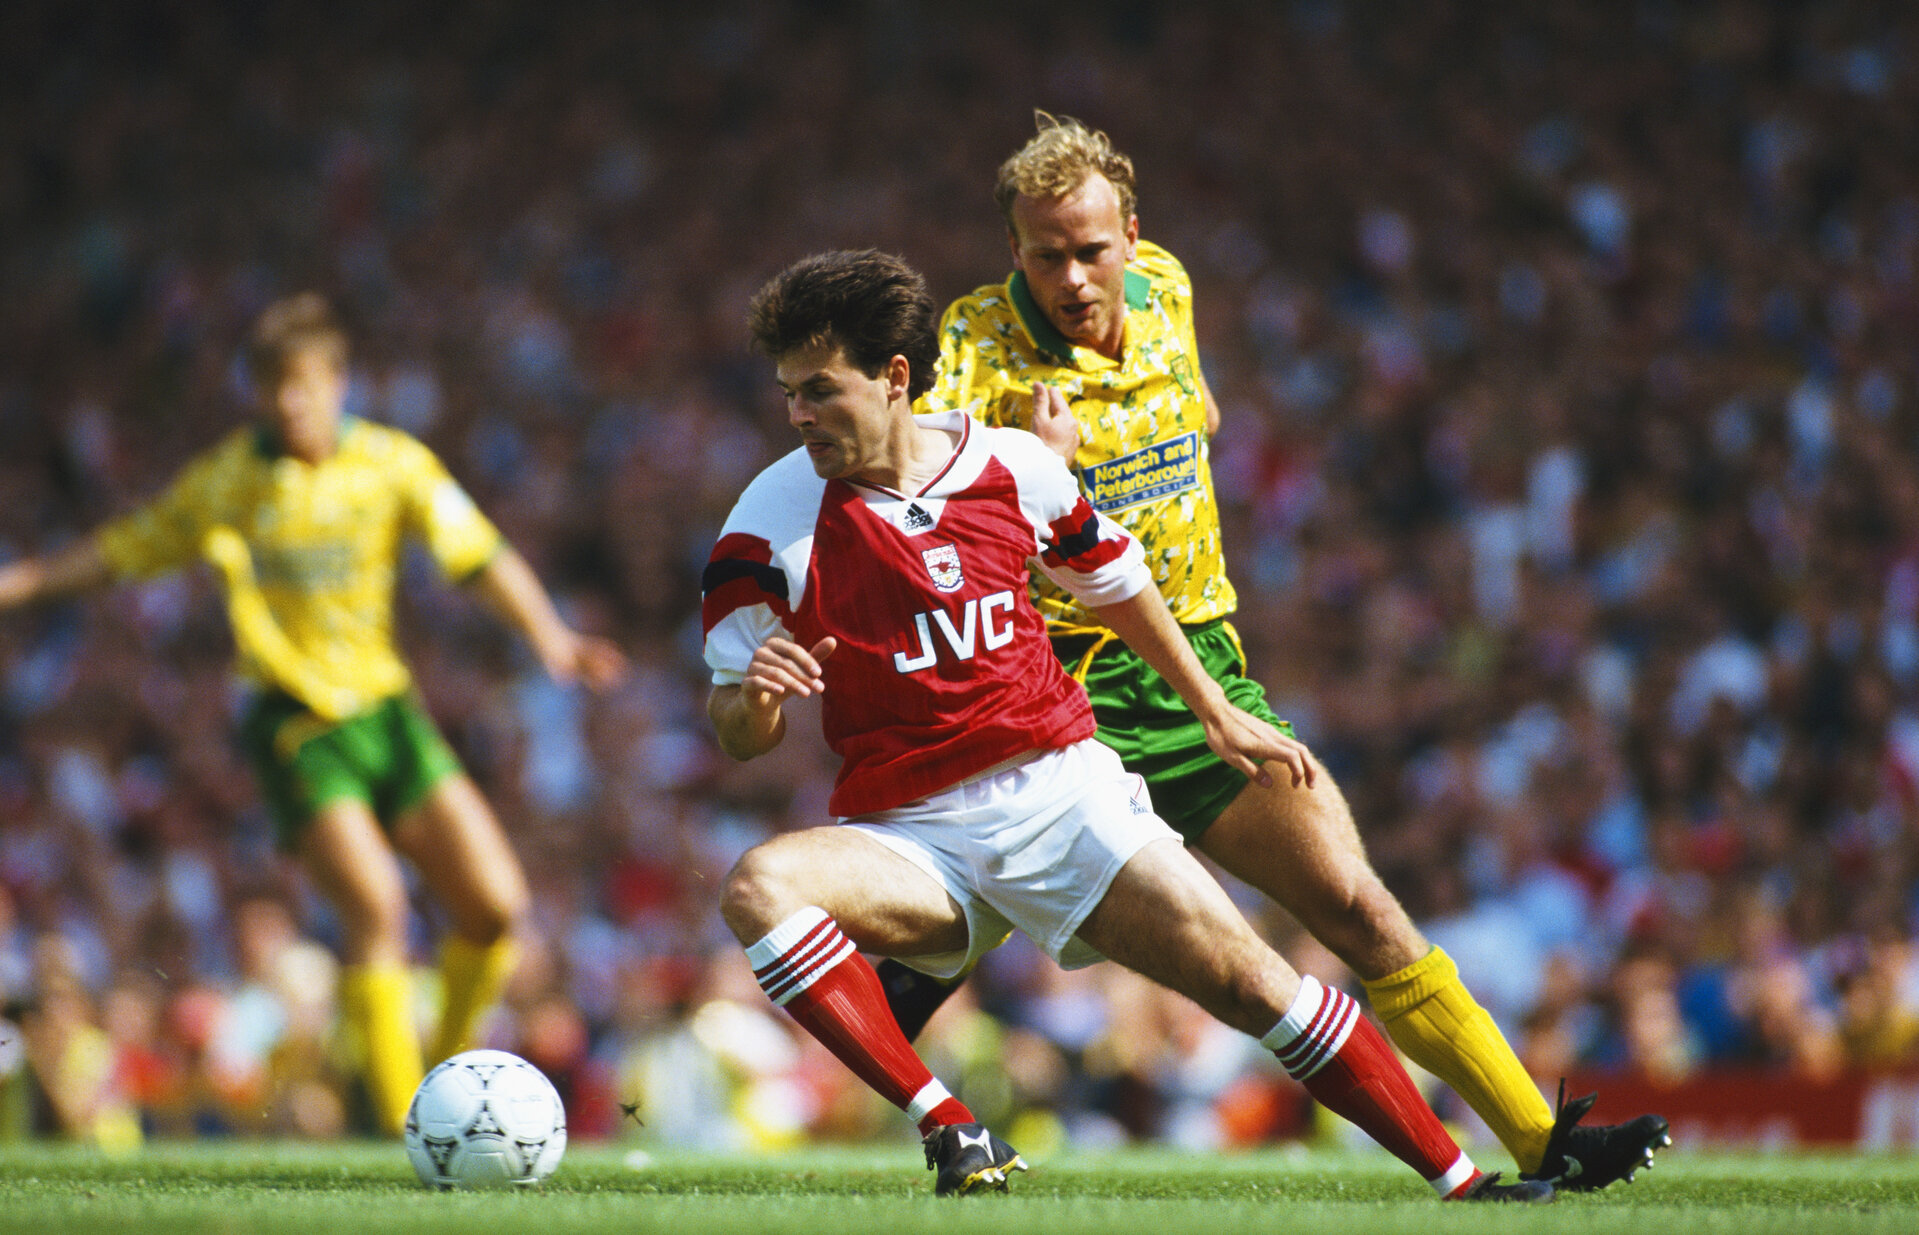 LONDON, UNITED KINGDOM - AUGUST 15: Arsenal wing Anders Limpar holds off the challenge of Jeremy Goss during a FA Premier League match between Arsenal and Norwich City at Higbury on August 15, 1992 in London, England. (Photo by Ben Radford/Allsport/Getty Images)